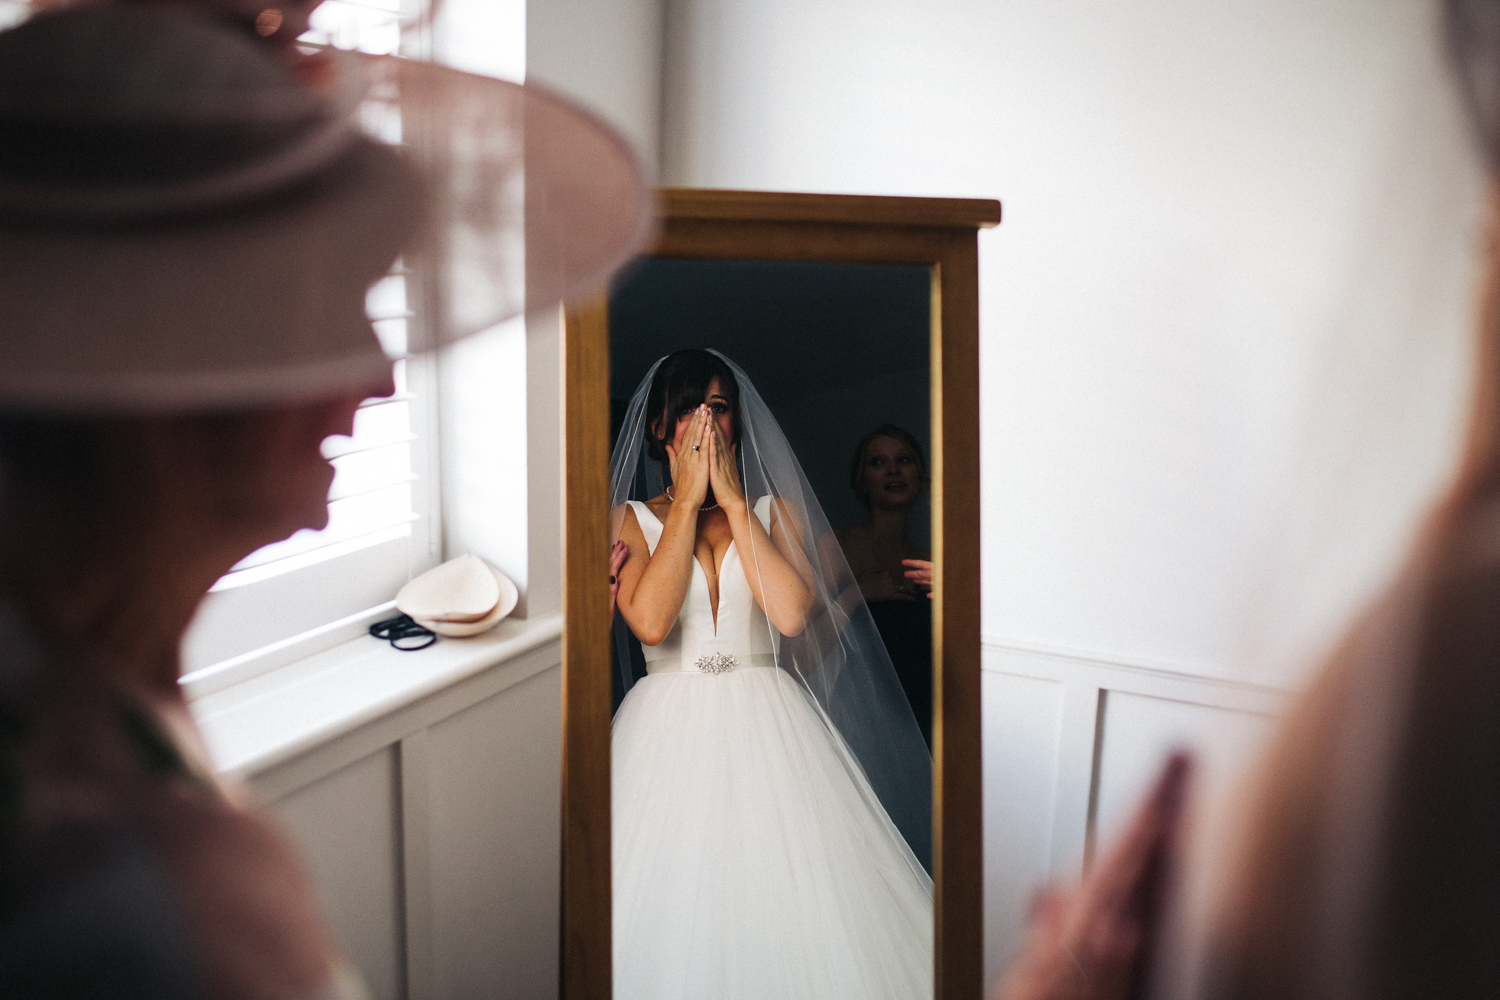 a bride looks awed at her own reflection in her wedding dress